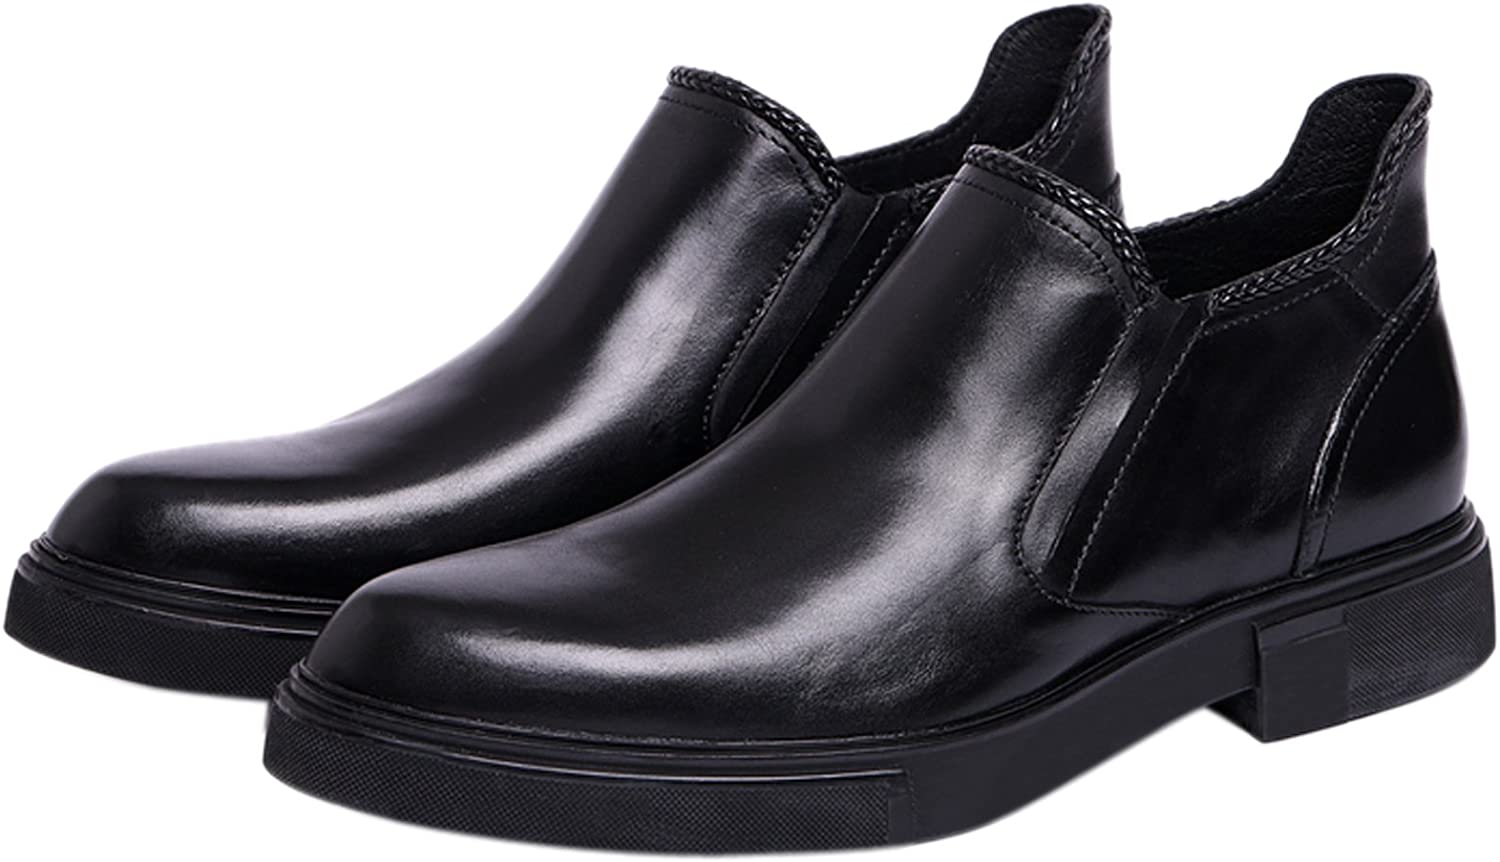 Santimon Mens Chelsea Boots Slip On Dress shoes Leather Ankle Boots Formal shoes